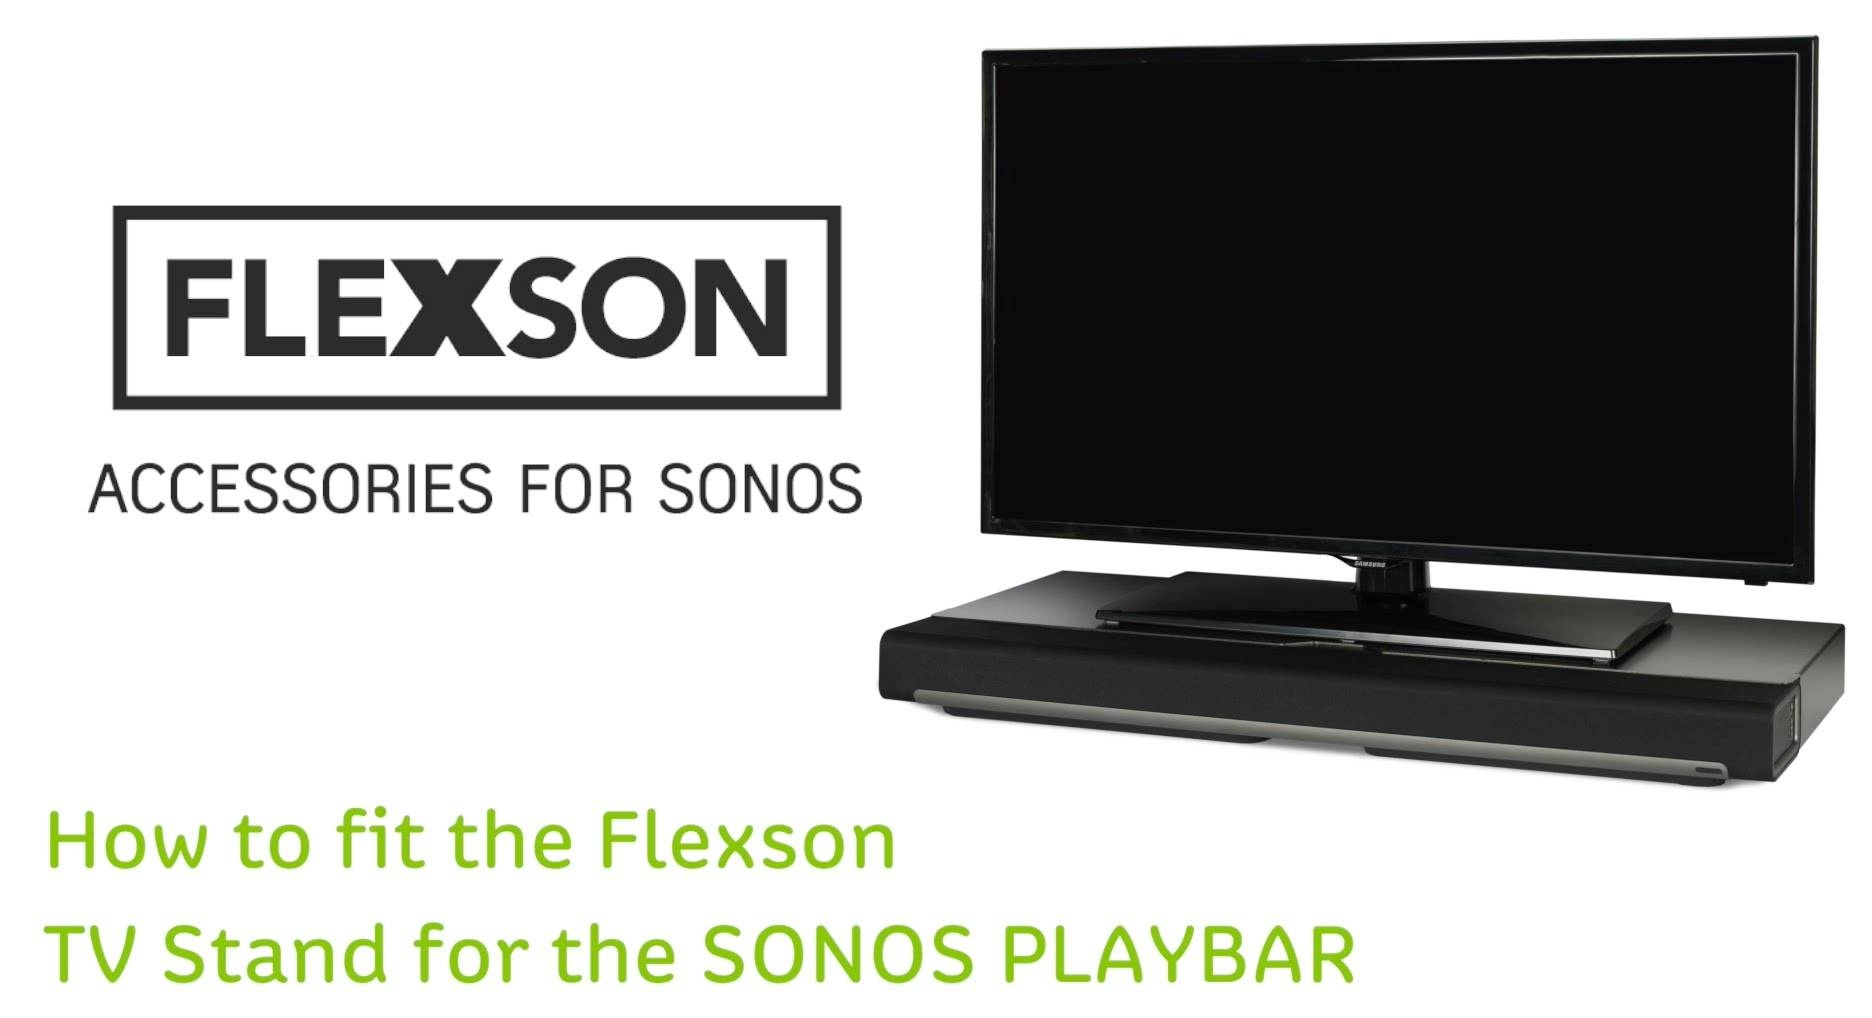 How To Fit The Flexson Tv Stand For The Sonos Playbar – Youtube Intended For Sonos Tv Stands (View 8 of 15)